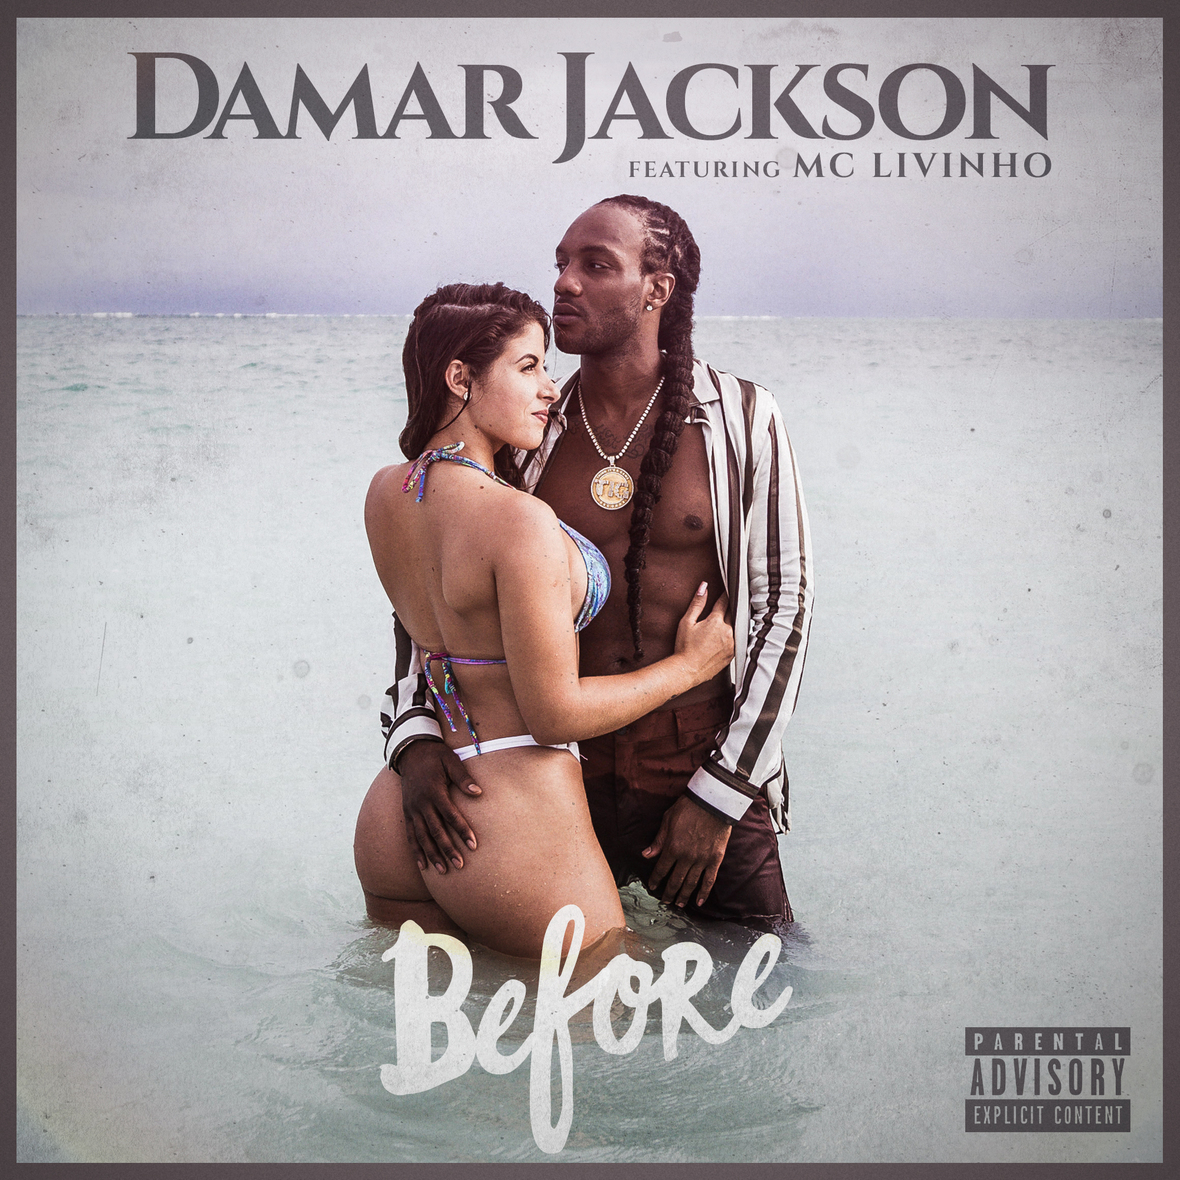 damar-jackson-before-v3